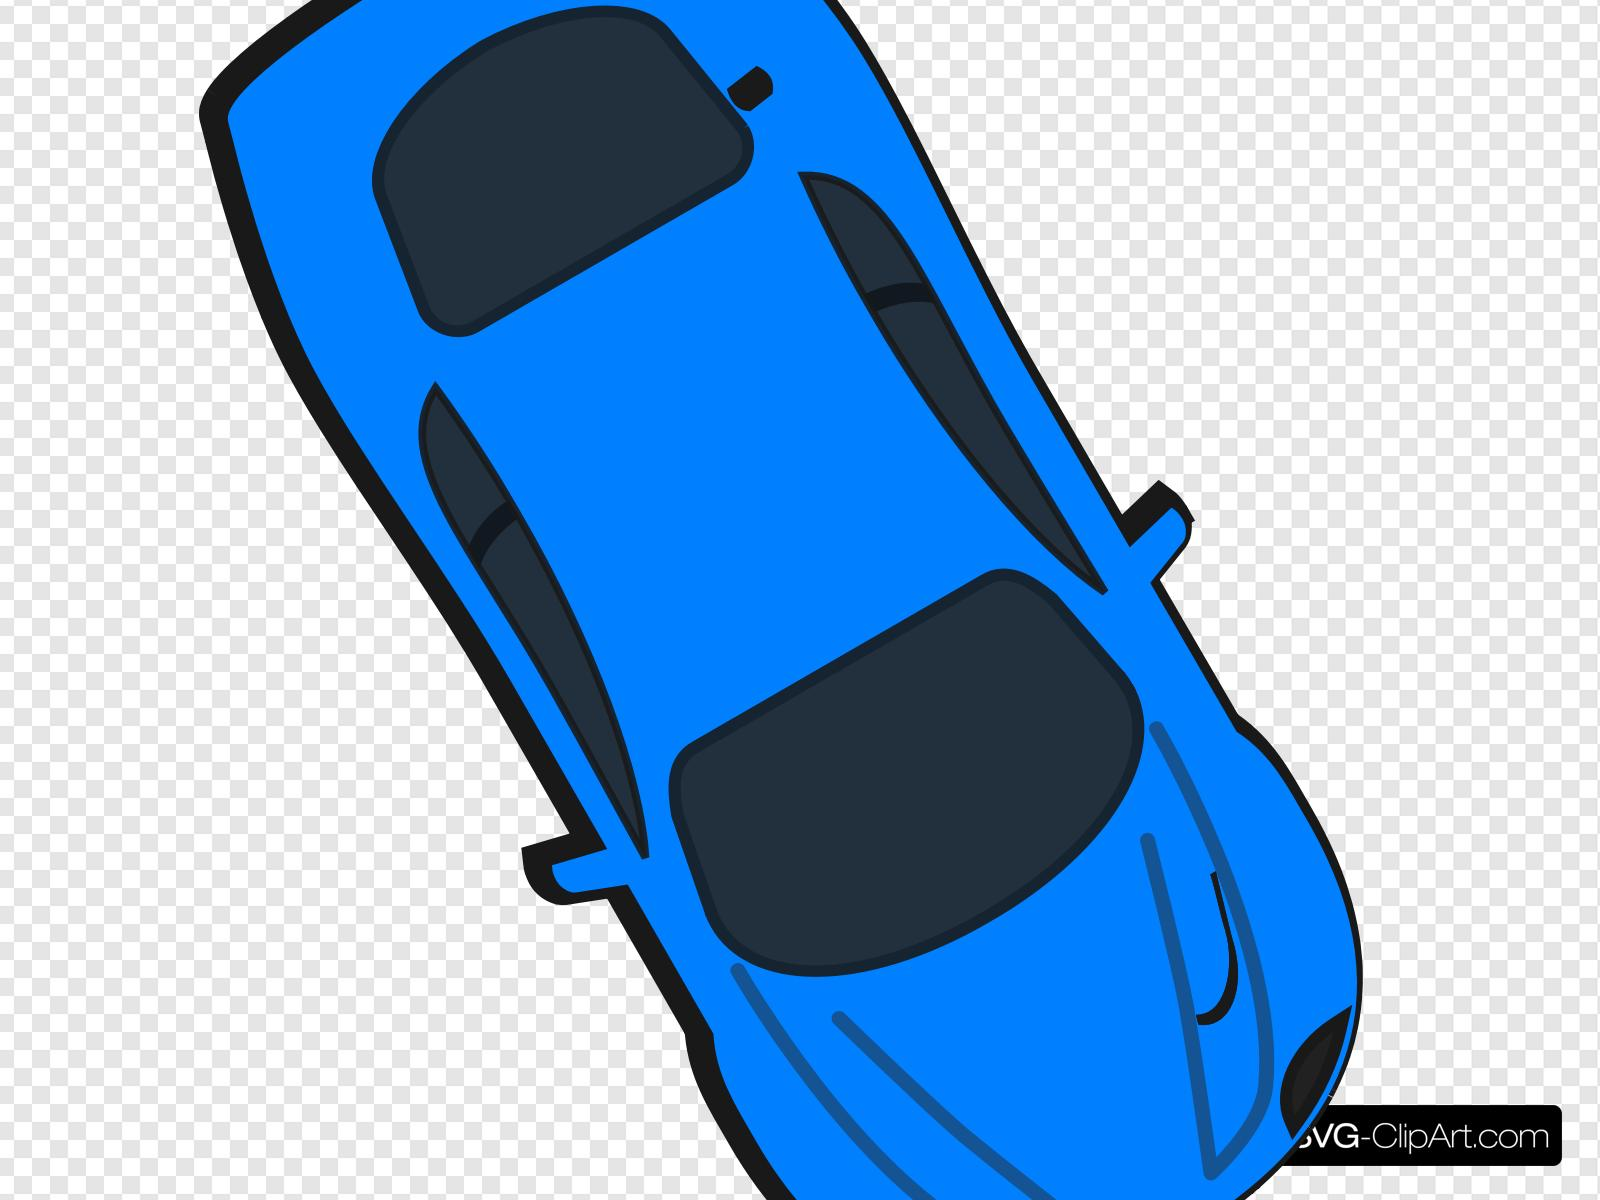 Blue Car - Top View - 300 Clip art, Icon and SVG - SVG Clipart vector library stock